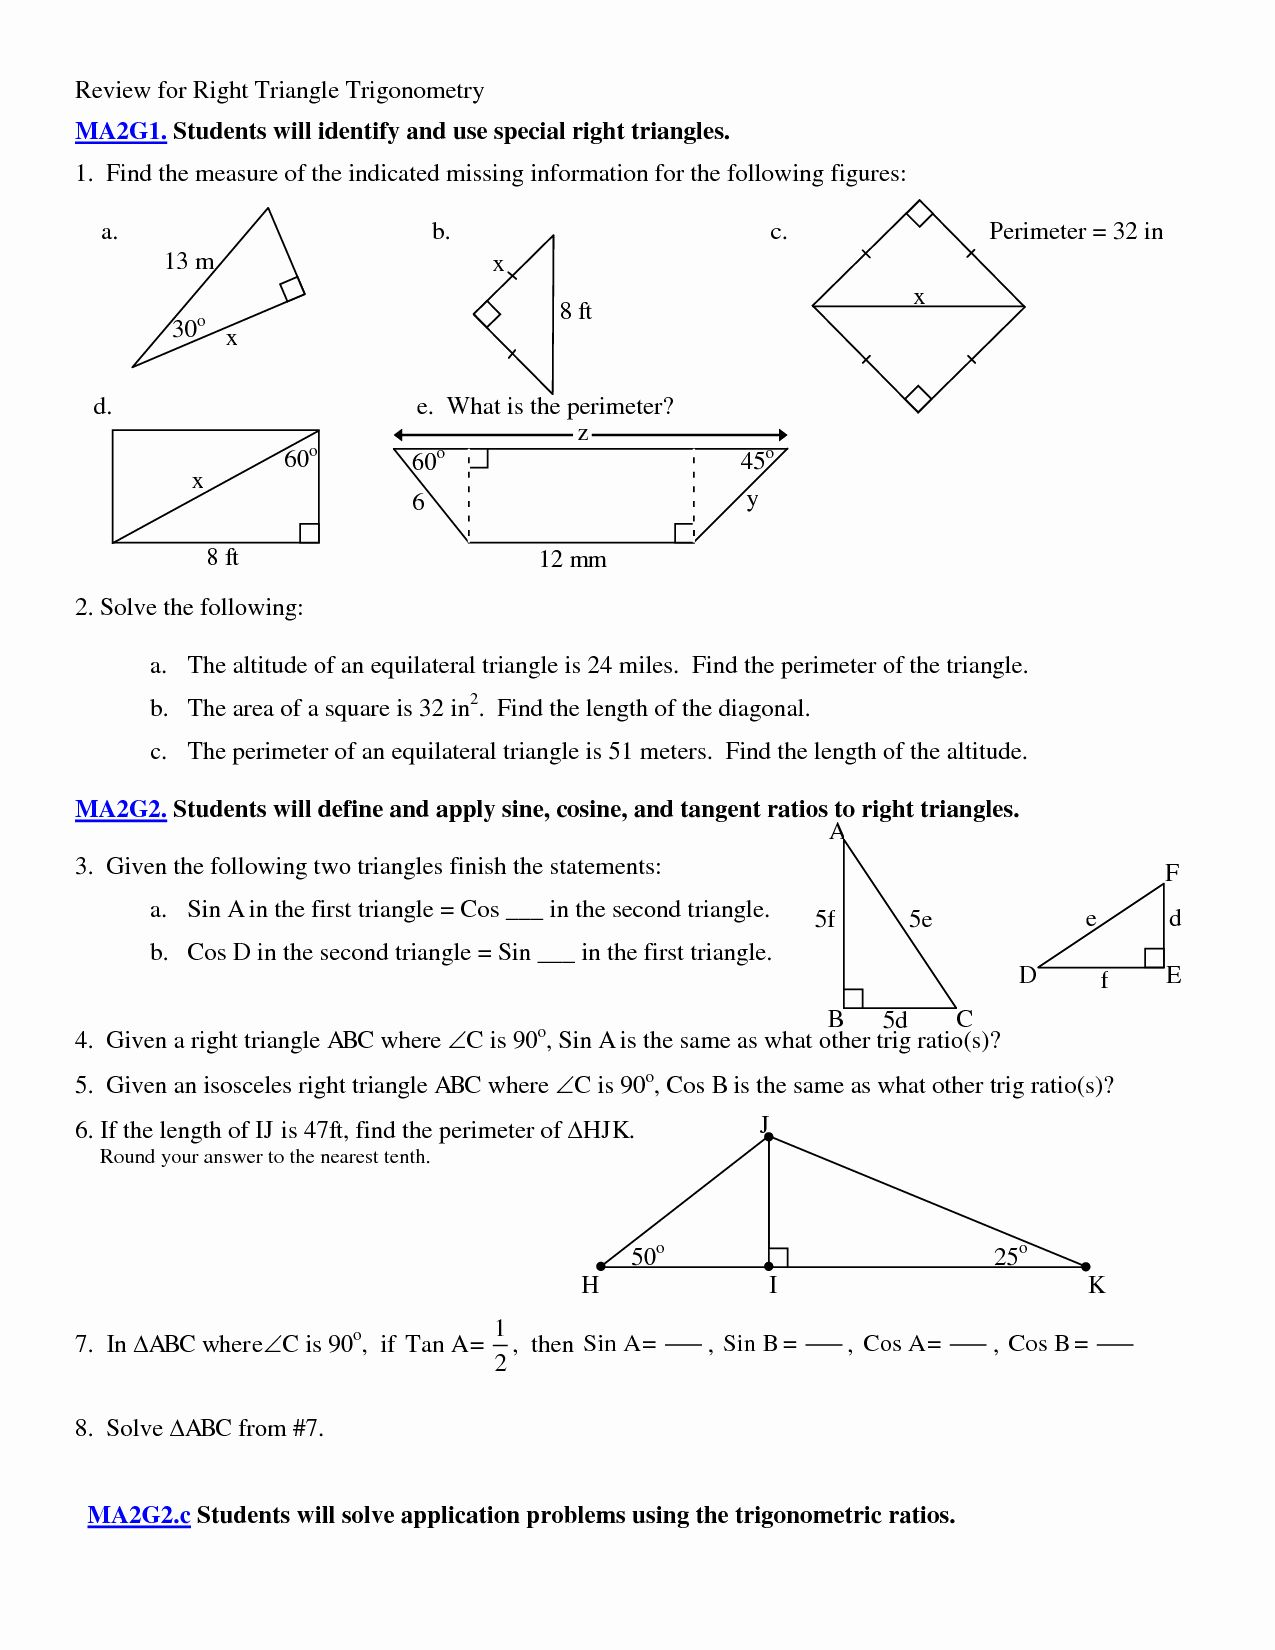 Right Triangle Trigonometry Worksheet Answers Unique 5